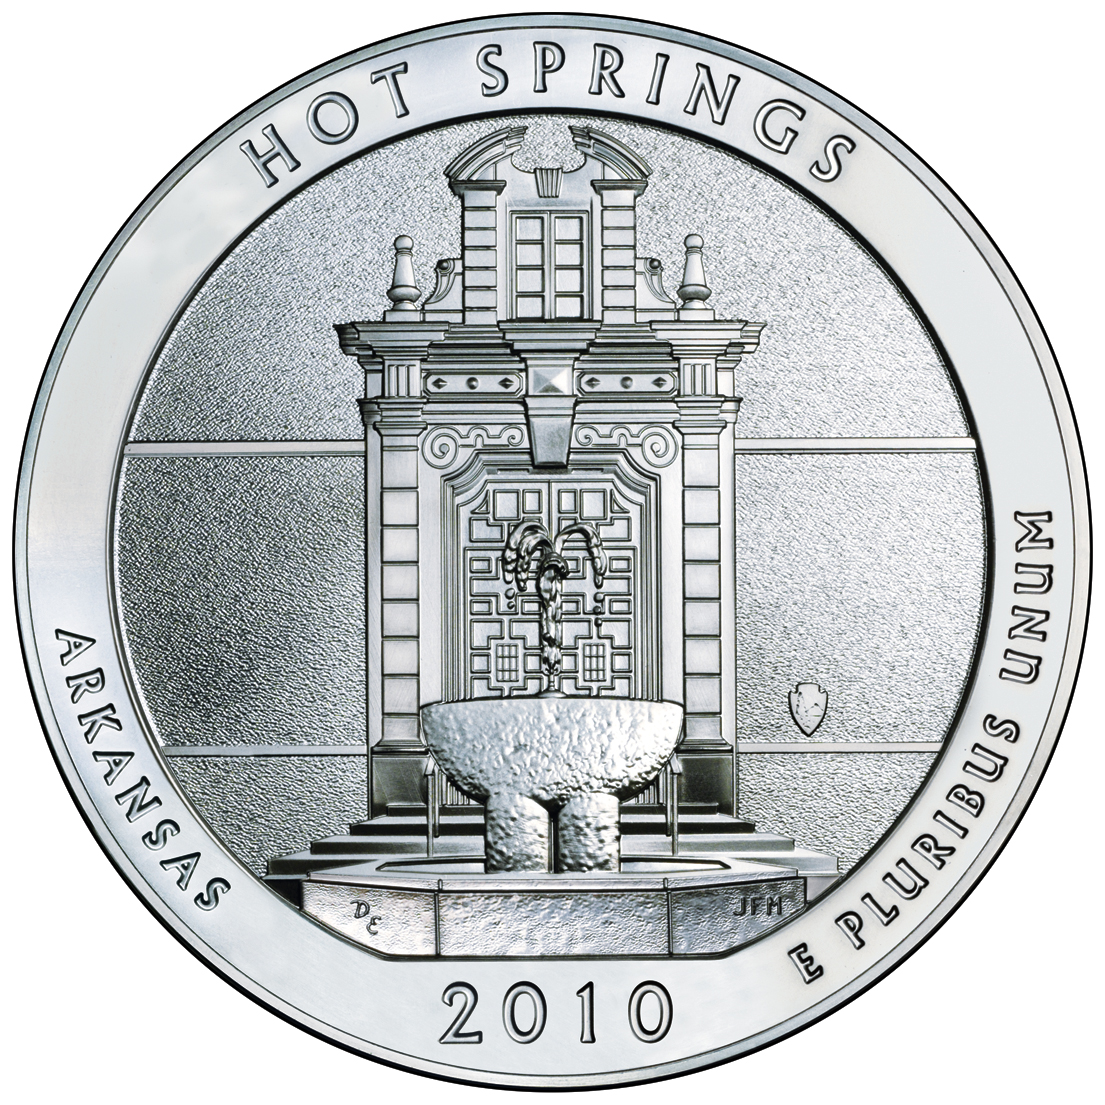 2010 America The Beautiful Quarters Five Ounce Silver Bullion Coin Hot Springs Arkansas Reverse